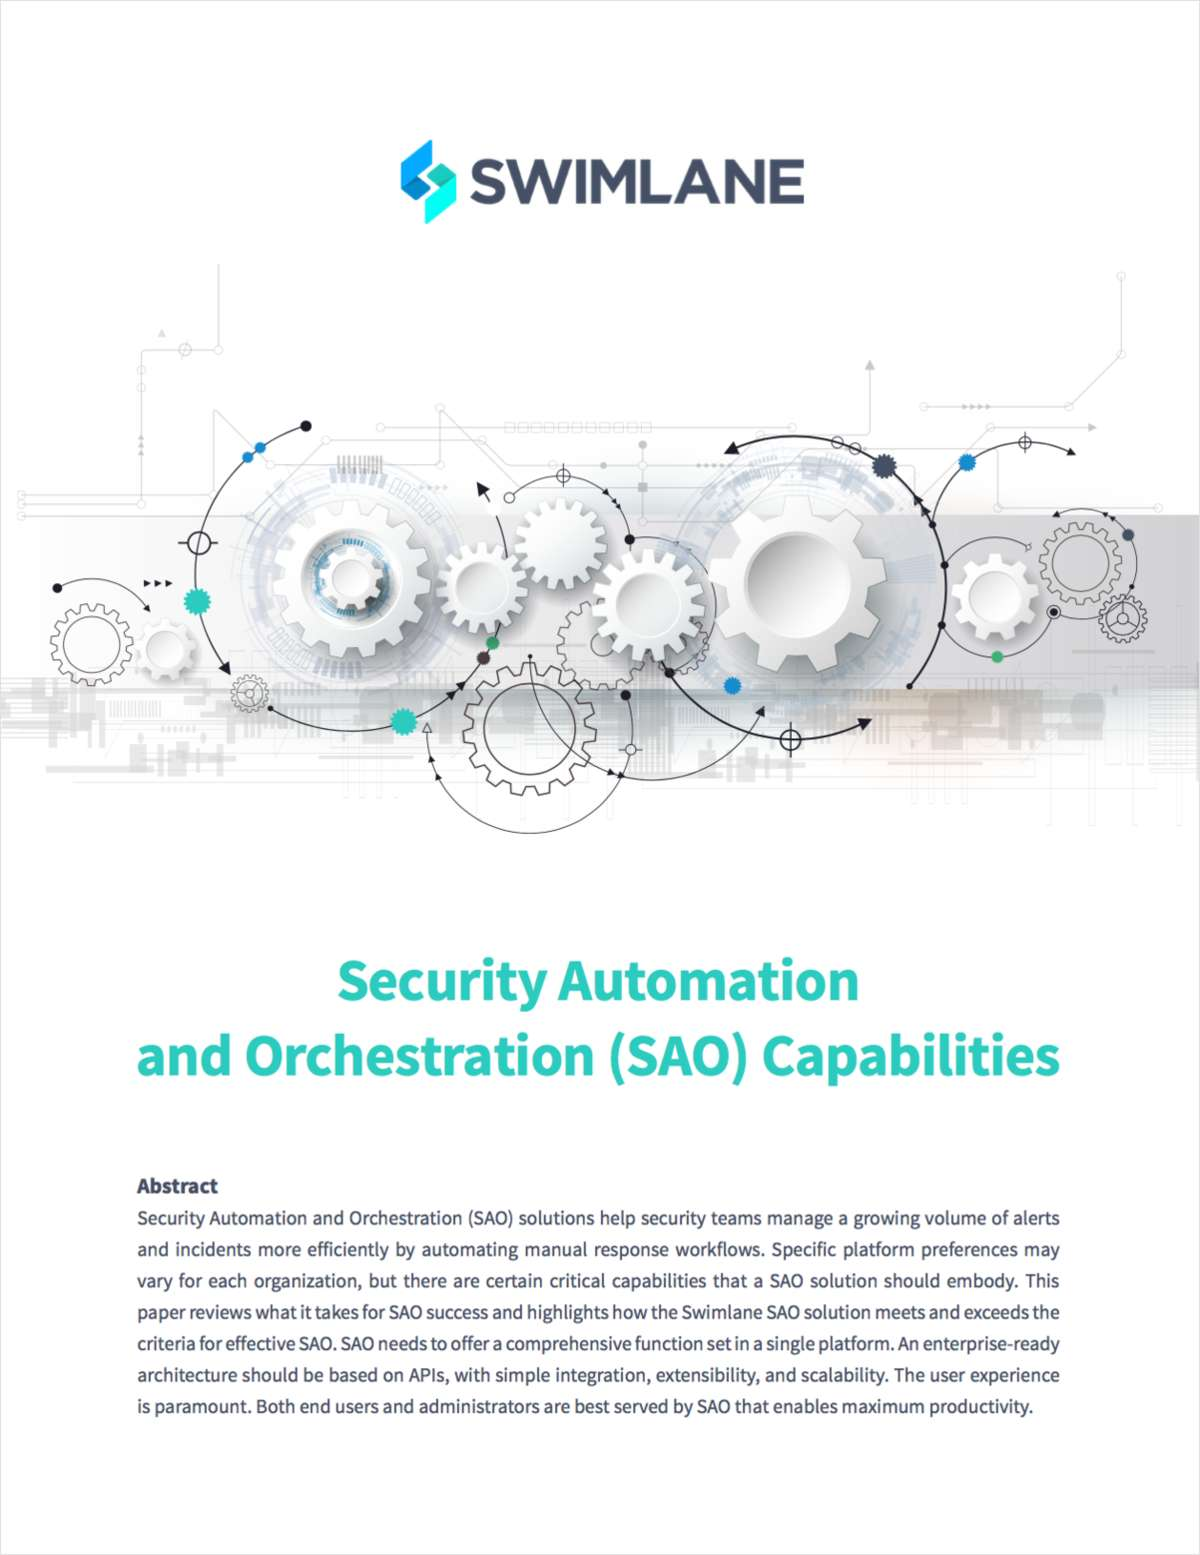 Security Automation and Orchestration (SAO) Capabilities